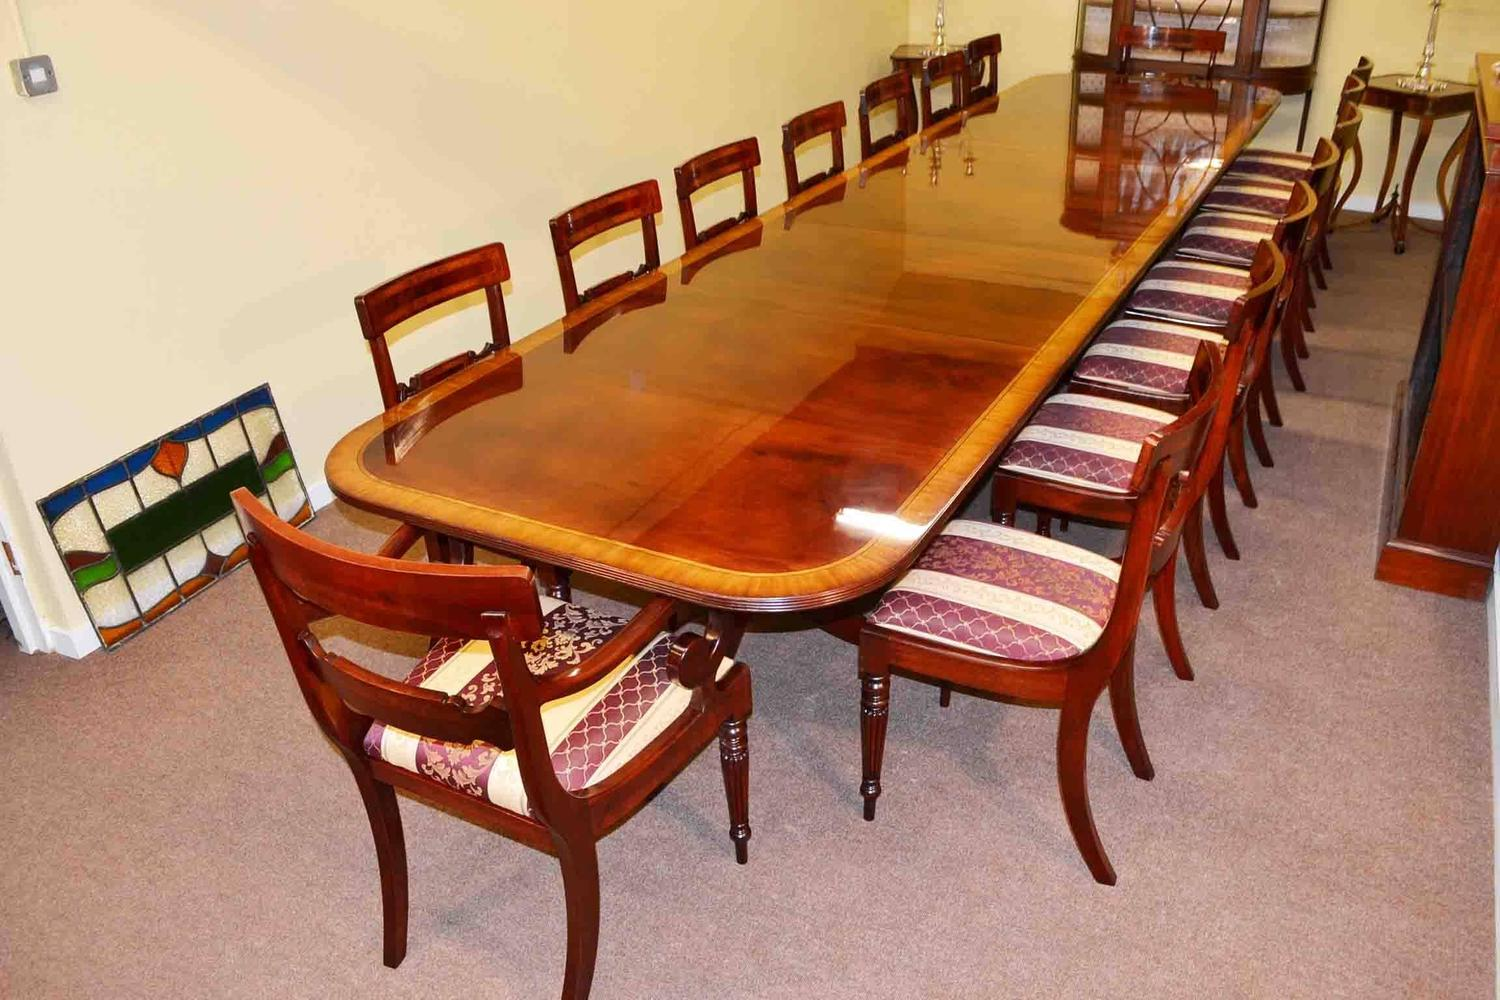 Regency Dining Table And Chairs Flame Mahogany At Stdibs - 16 foot conference room table